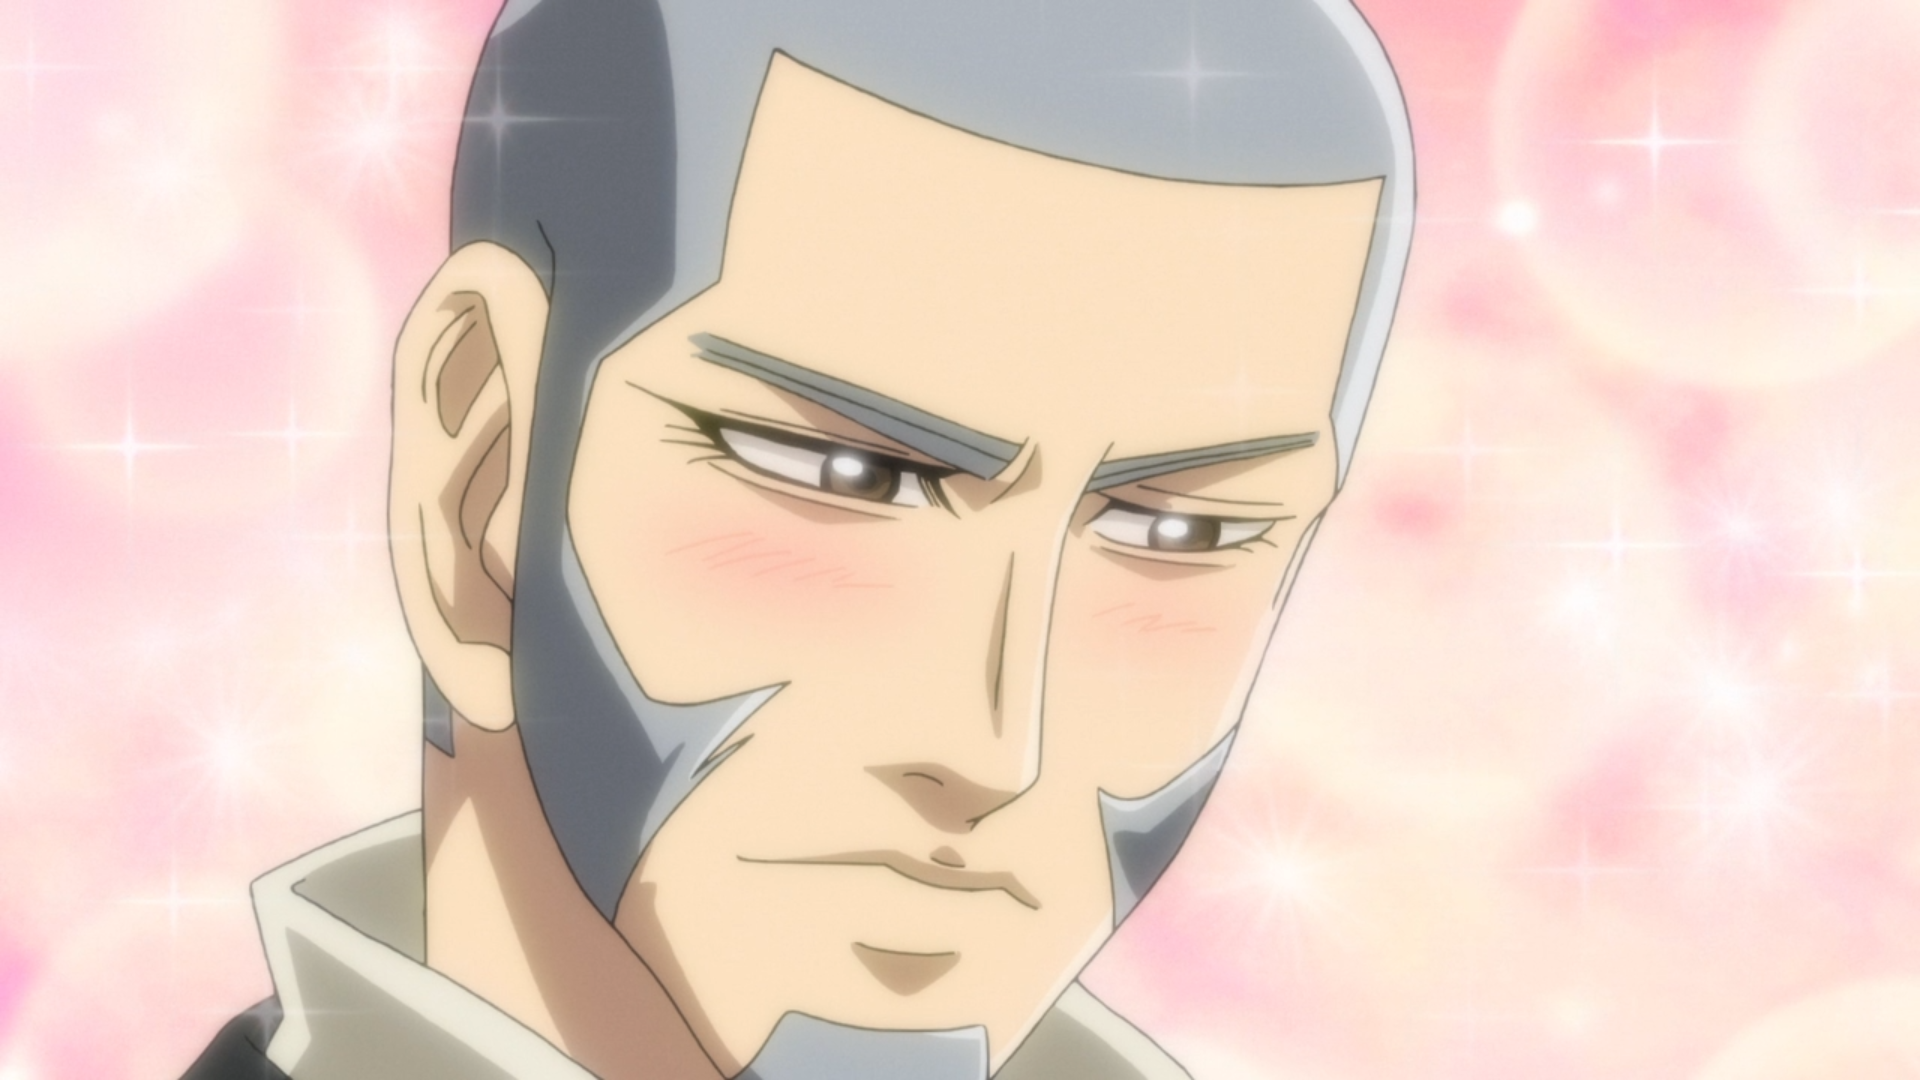 Shiraishi appears unfathomably sexy to Sugimoto's otter-altered perceptions in a scene from Episode 20 of the Golden Kamuy TV anime.